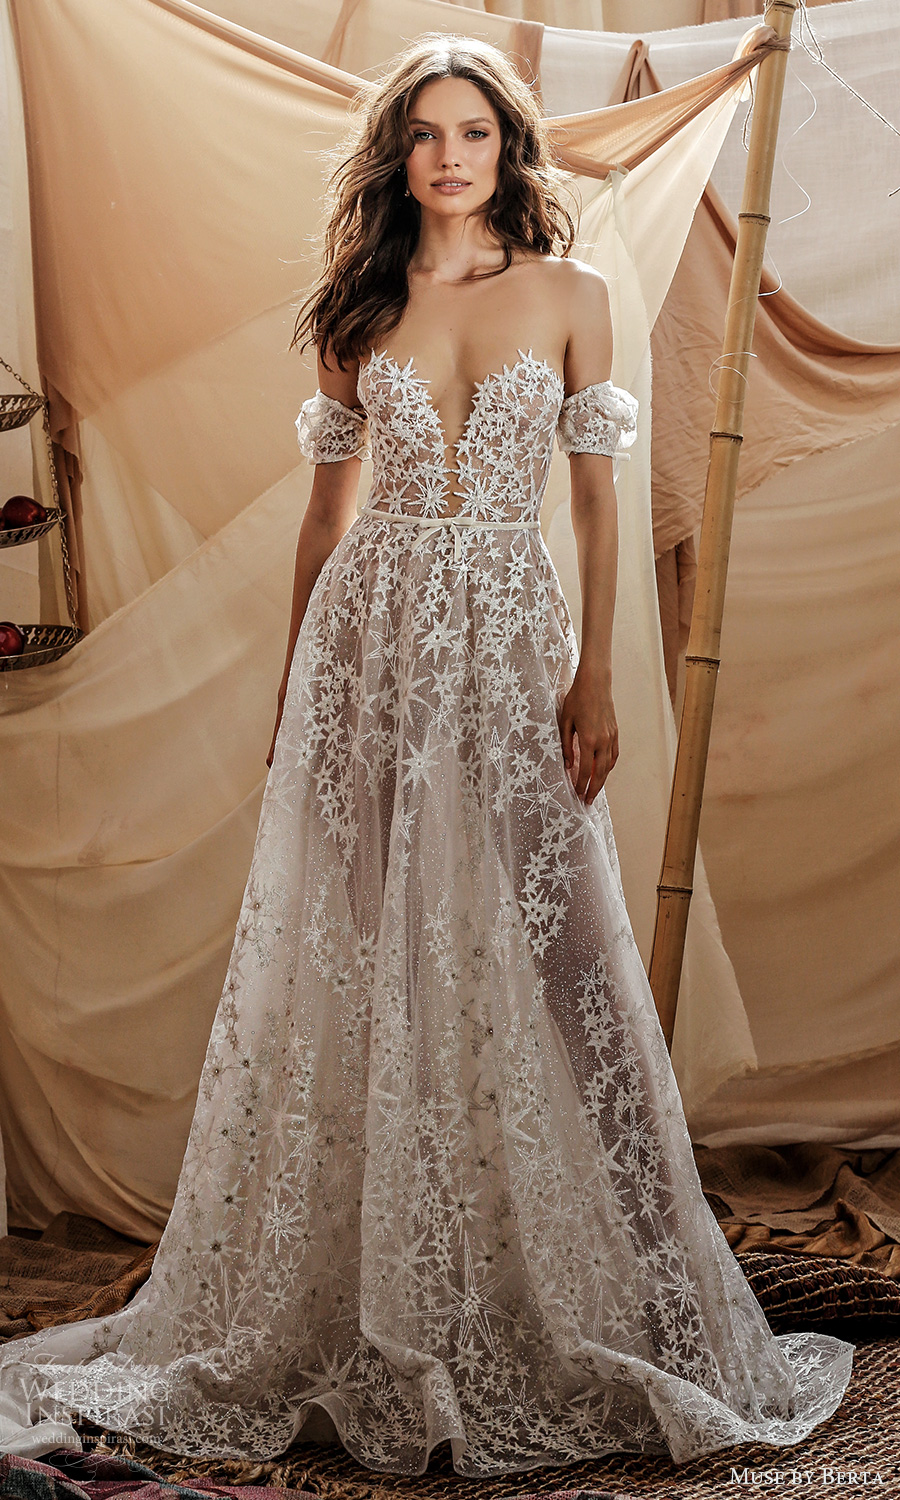 muse by berta spring 2021 bridal detached short puff sleeves plunging sweetheart neckline fully embellished a line ball gown wedding dress chapel train (4) mv